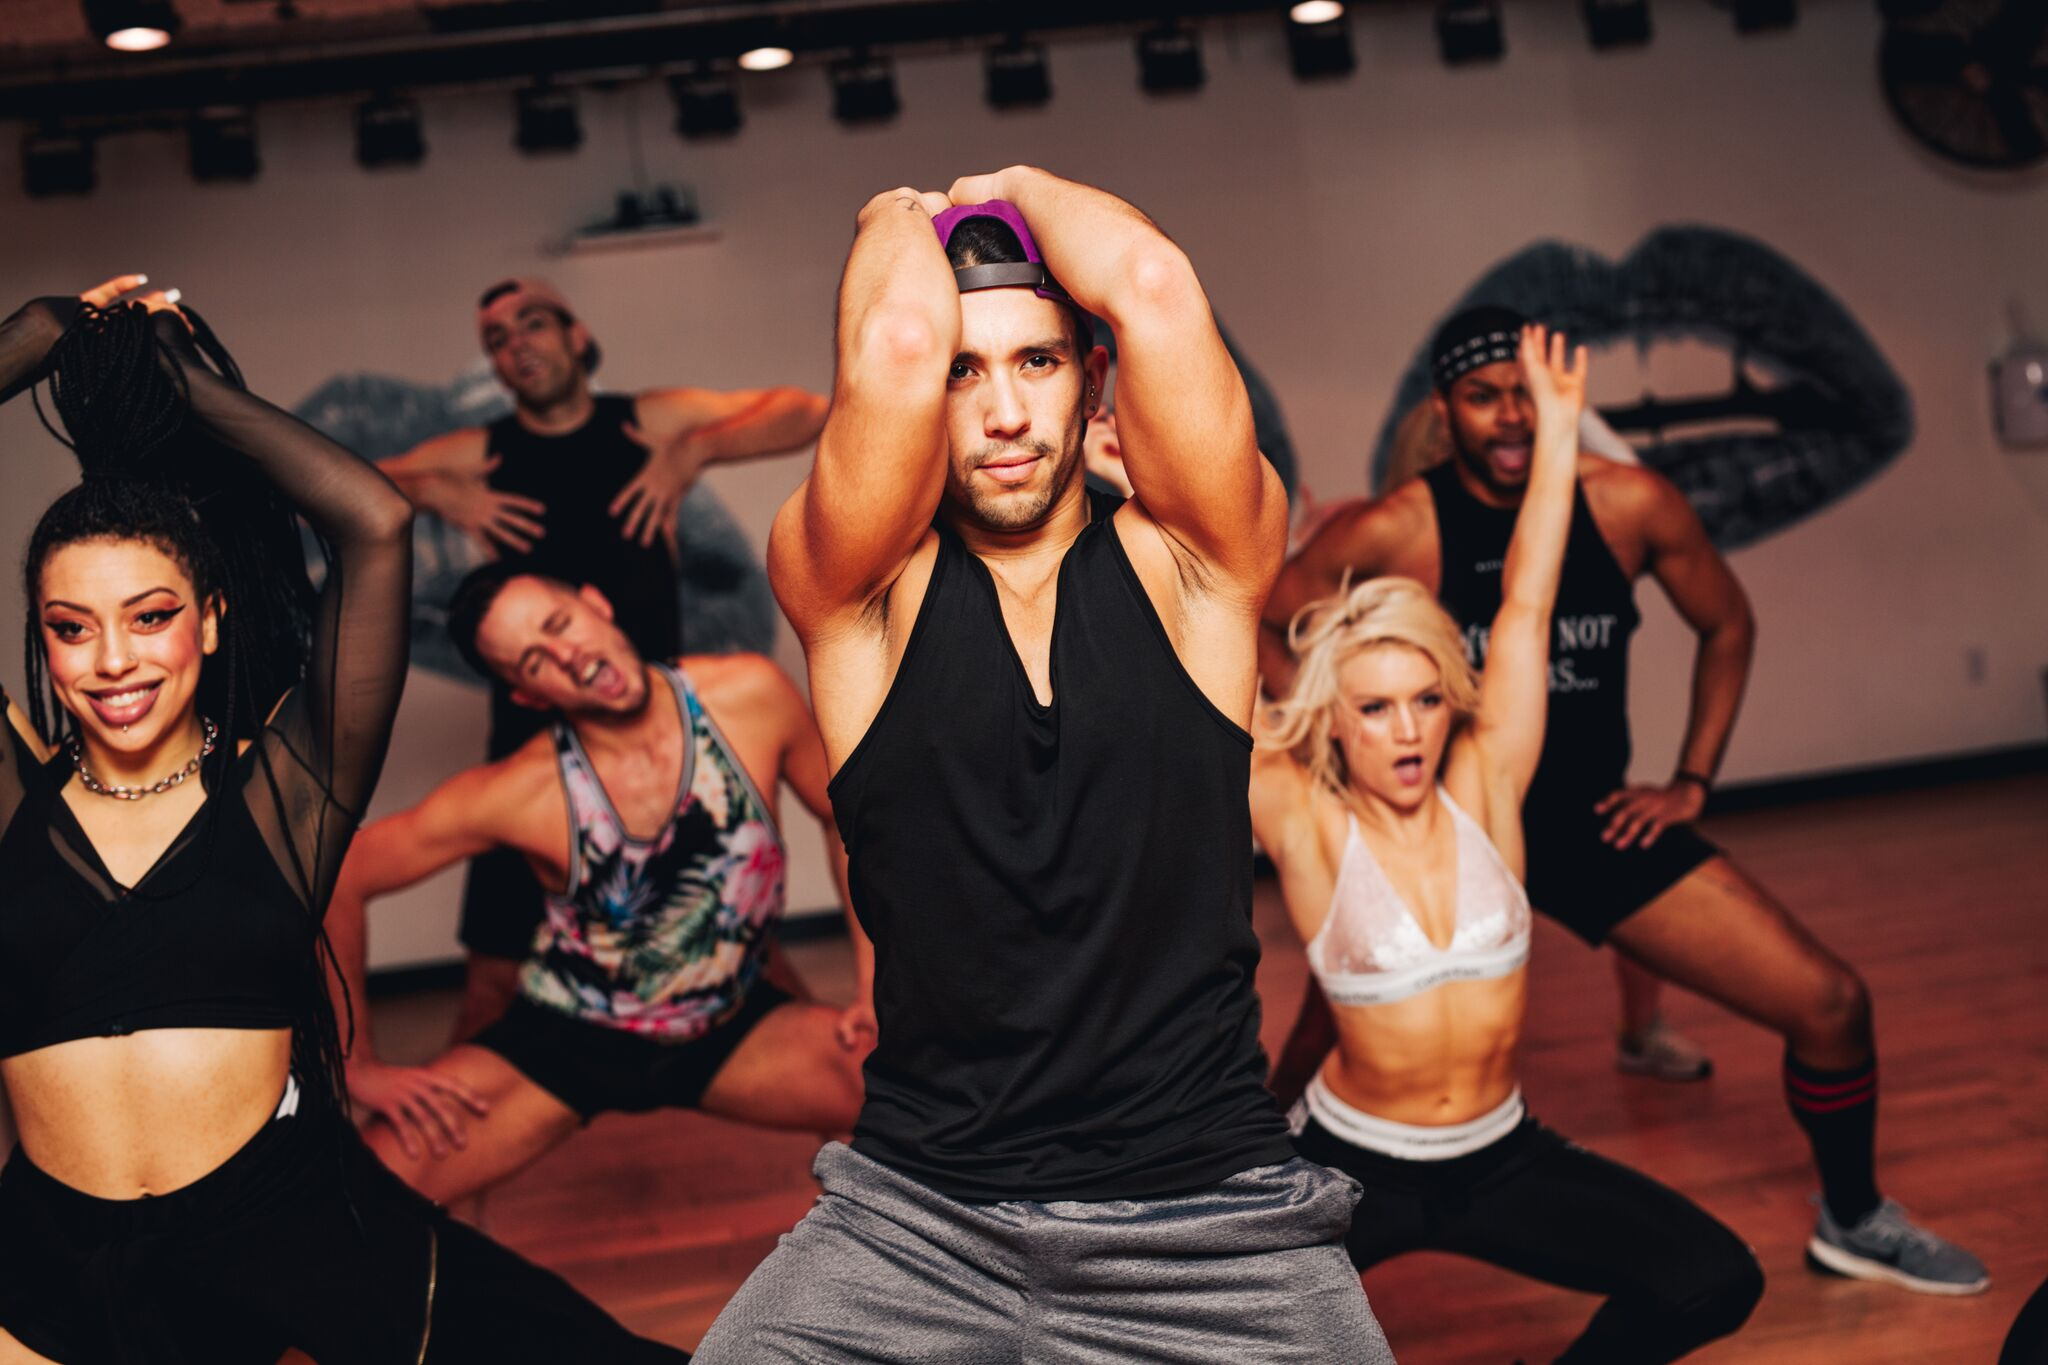 305 Fitness Fun Dance Cardio Workout Chris